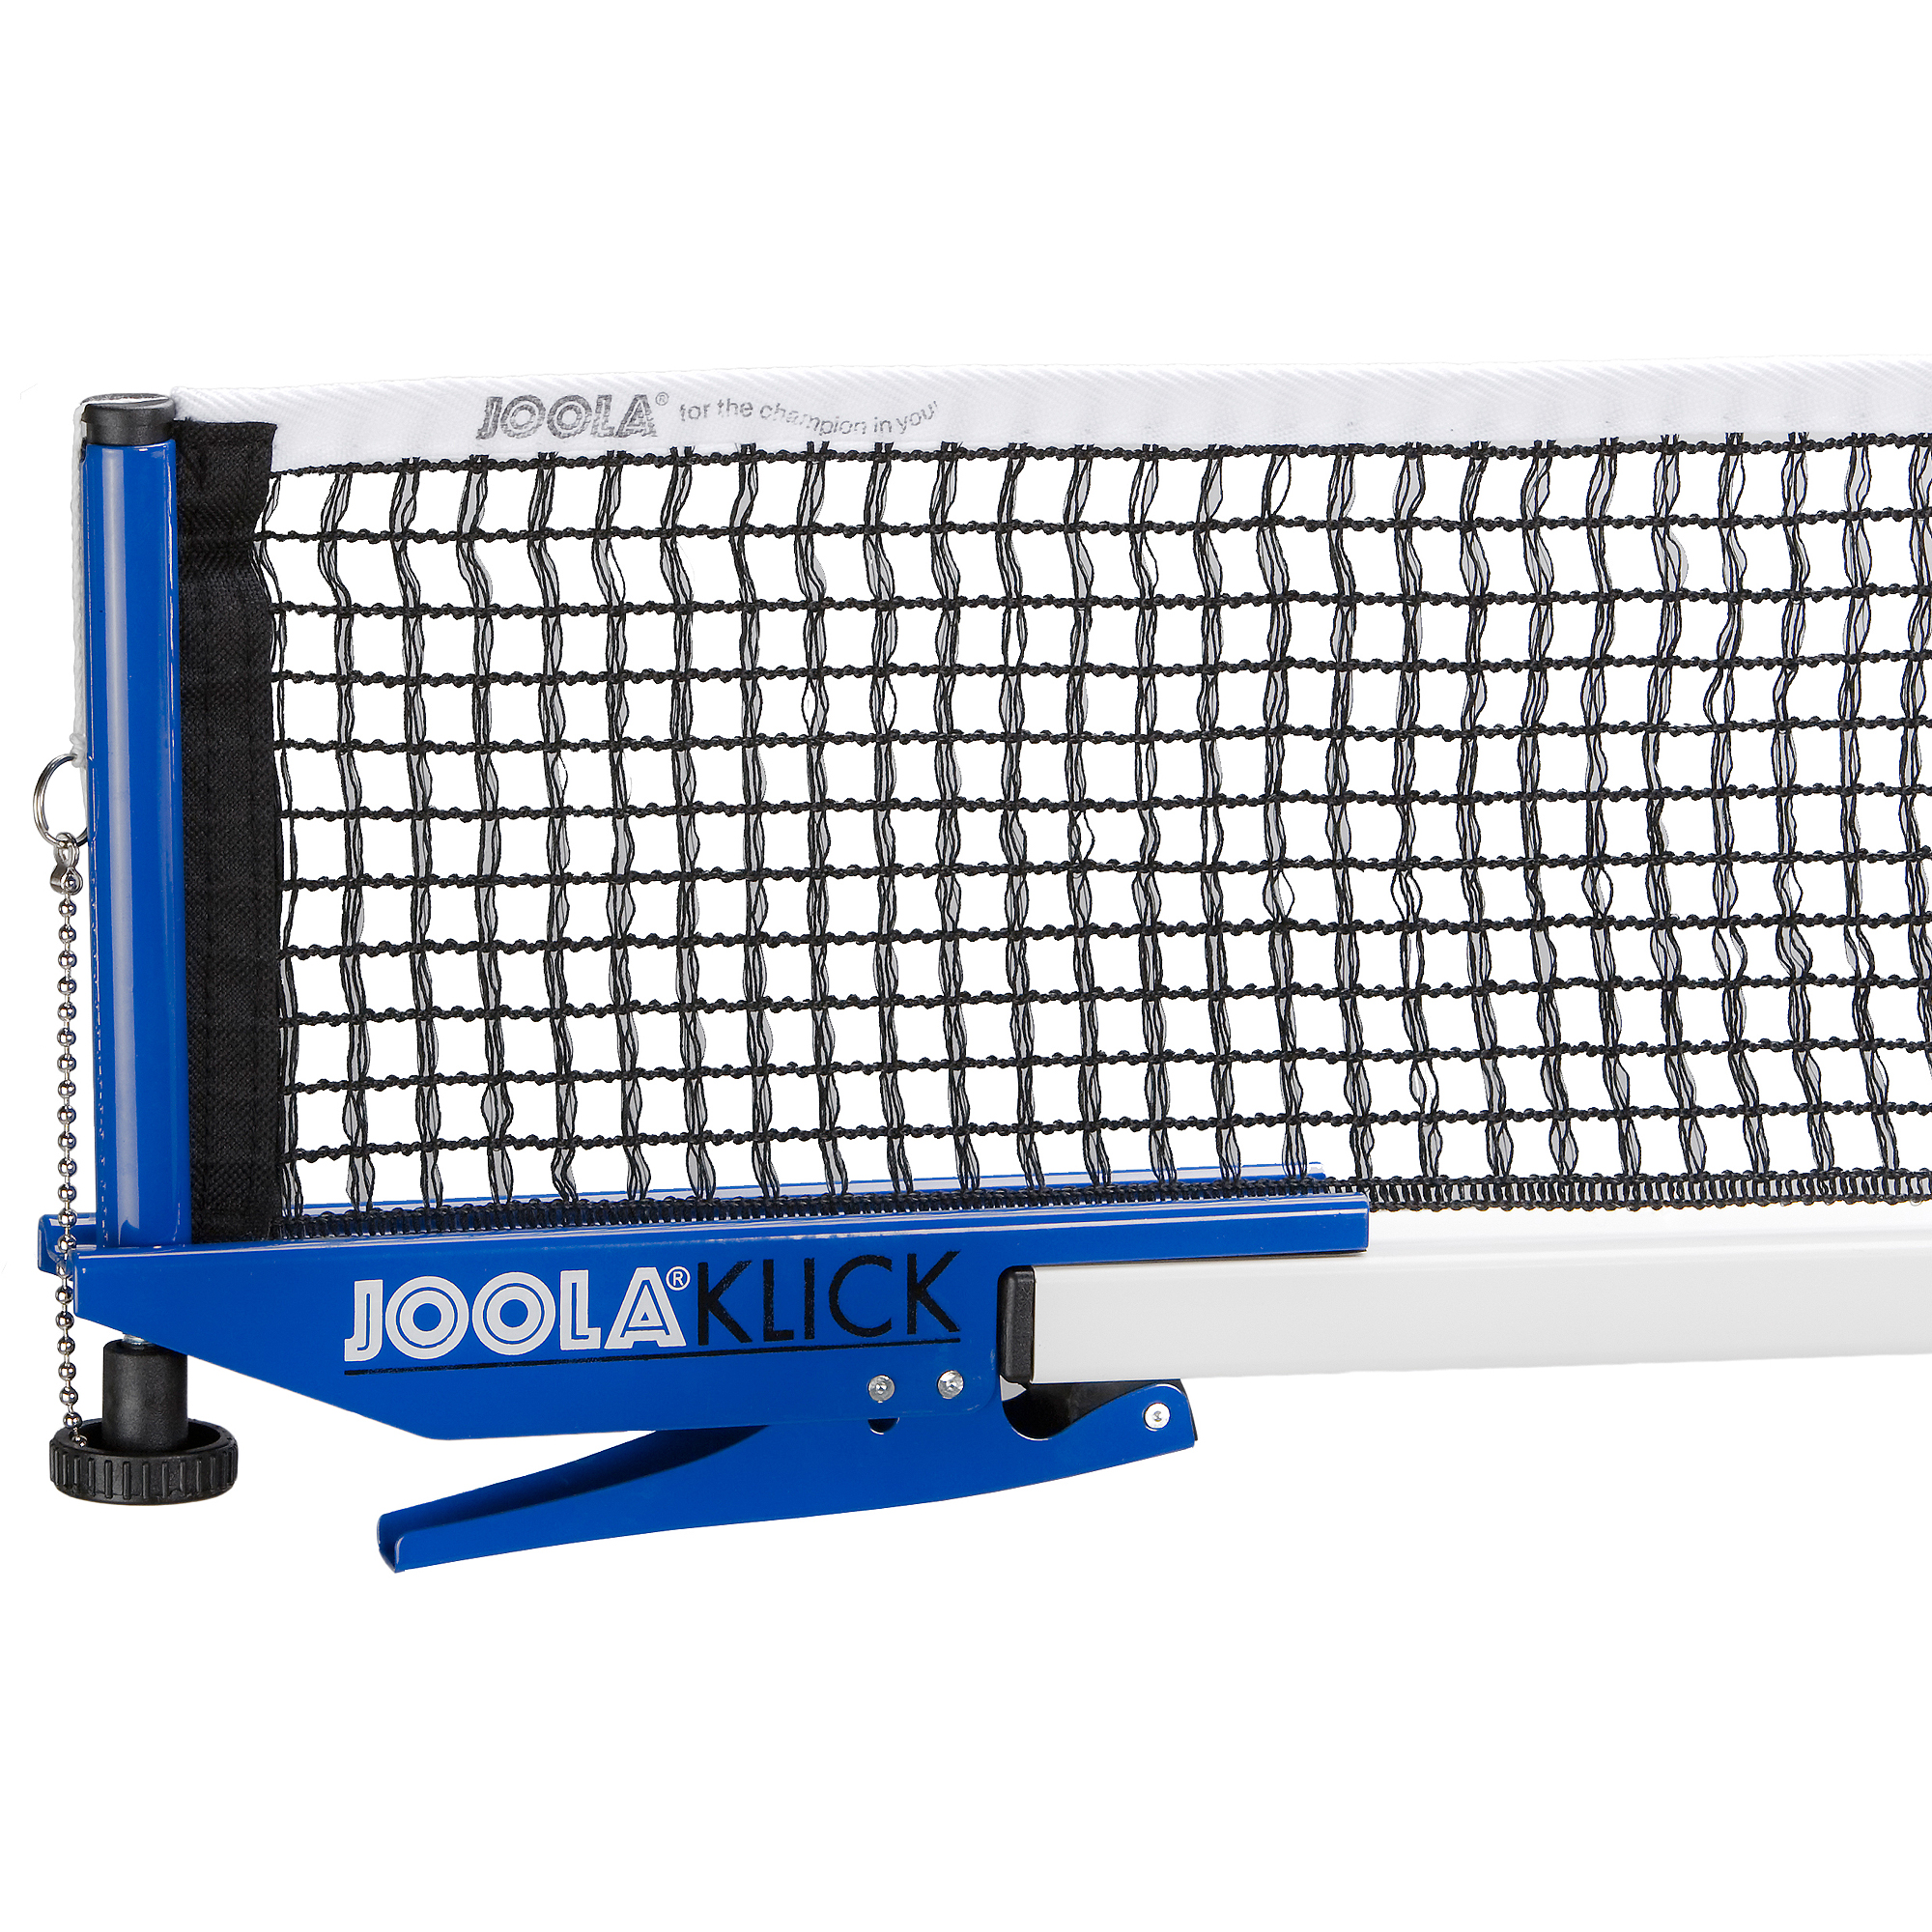 Joola Klick Clip On Table Tennis Net and Post Set, Blue